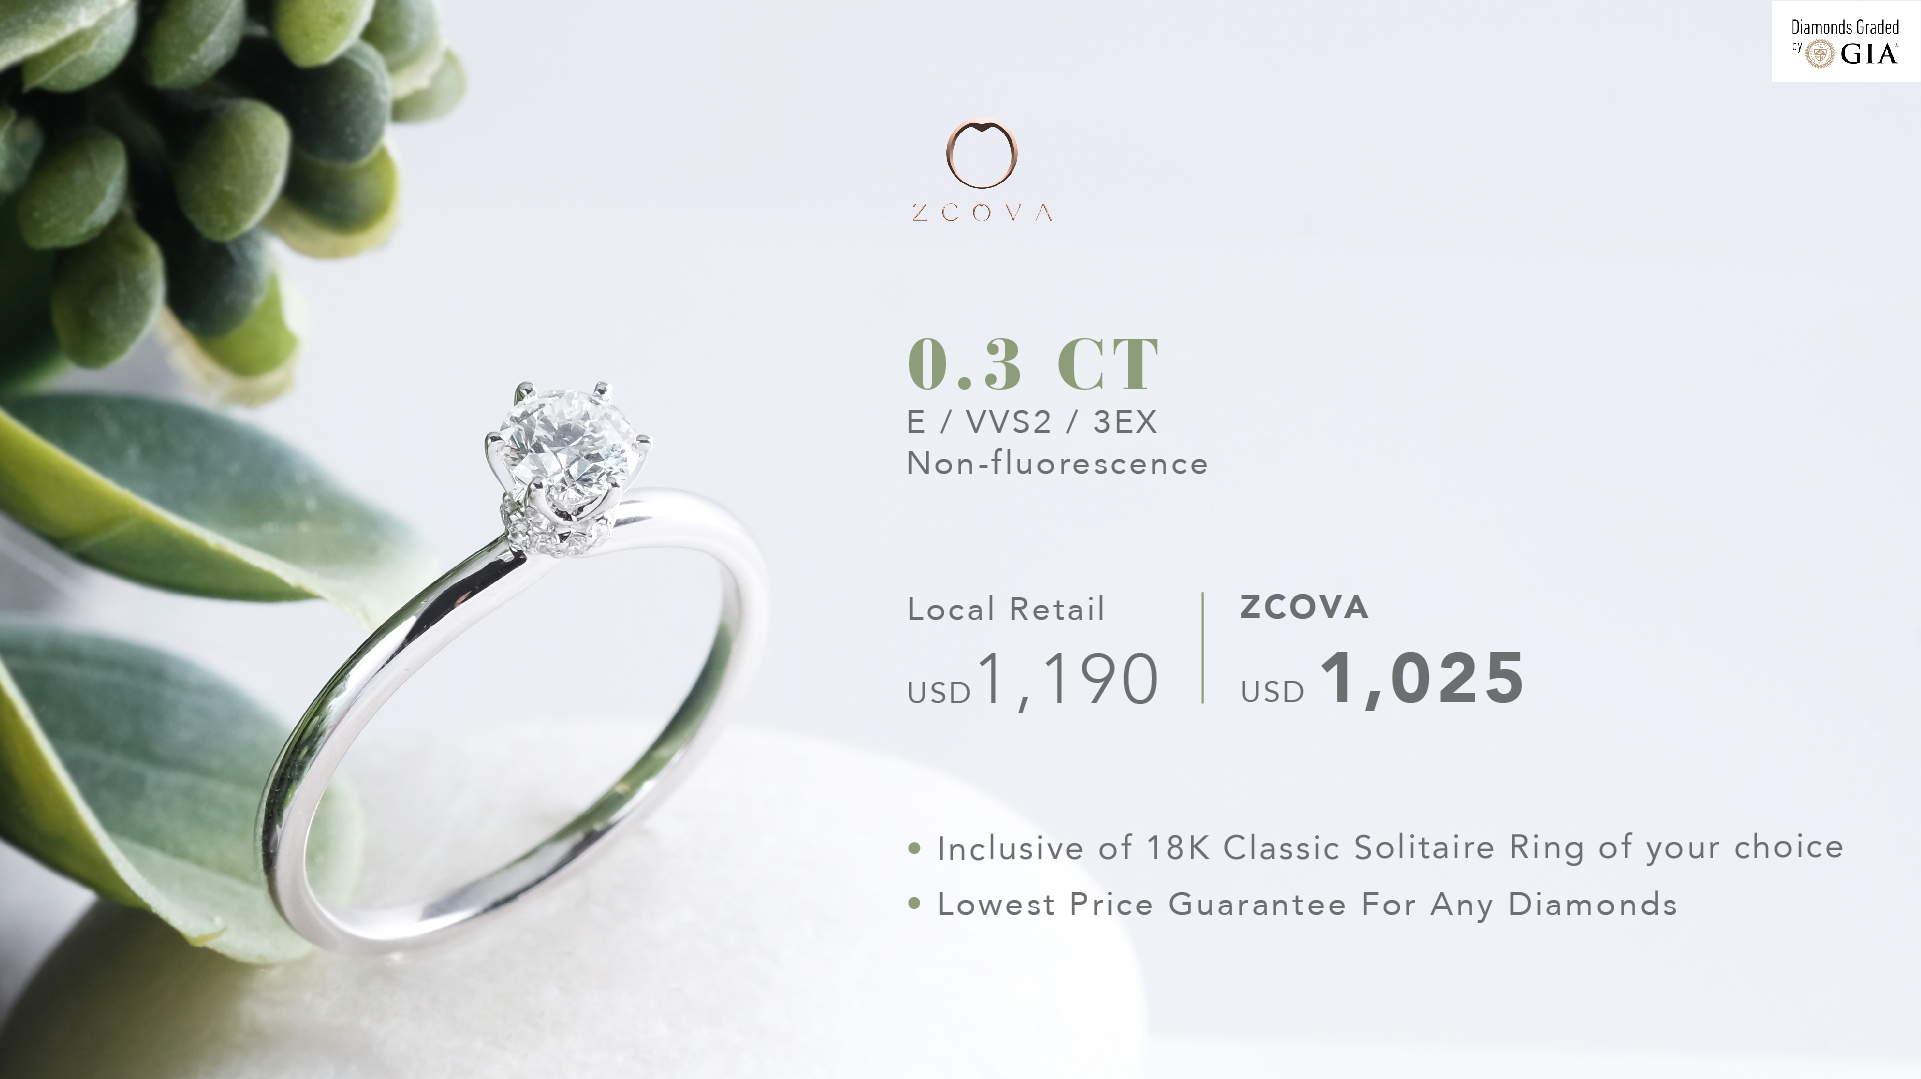 ZCOVA 0.3ct Engagement Ring Promotion